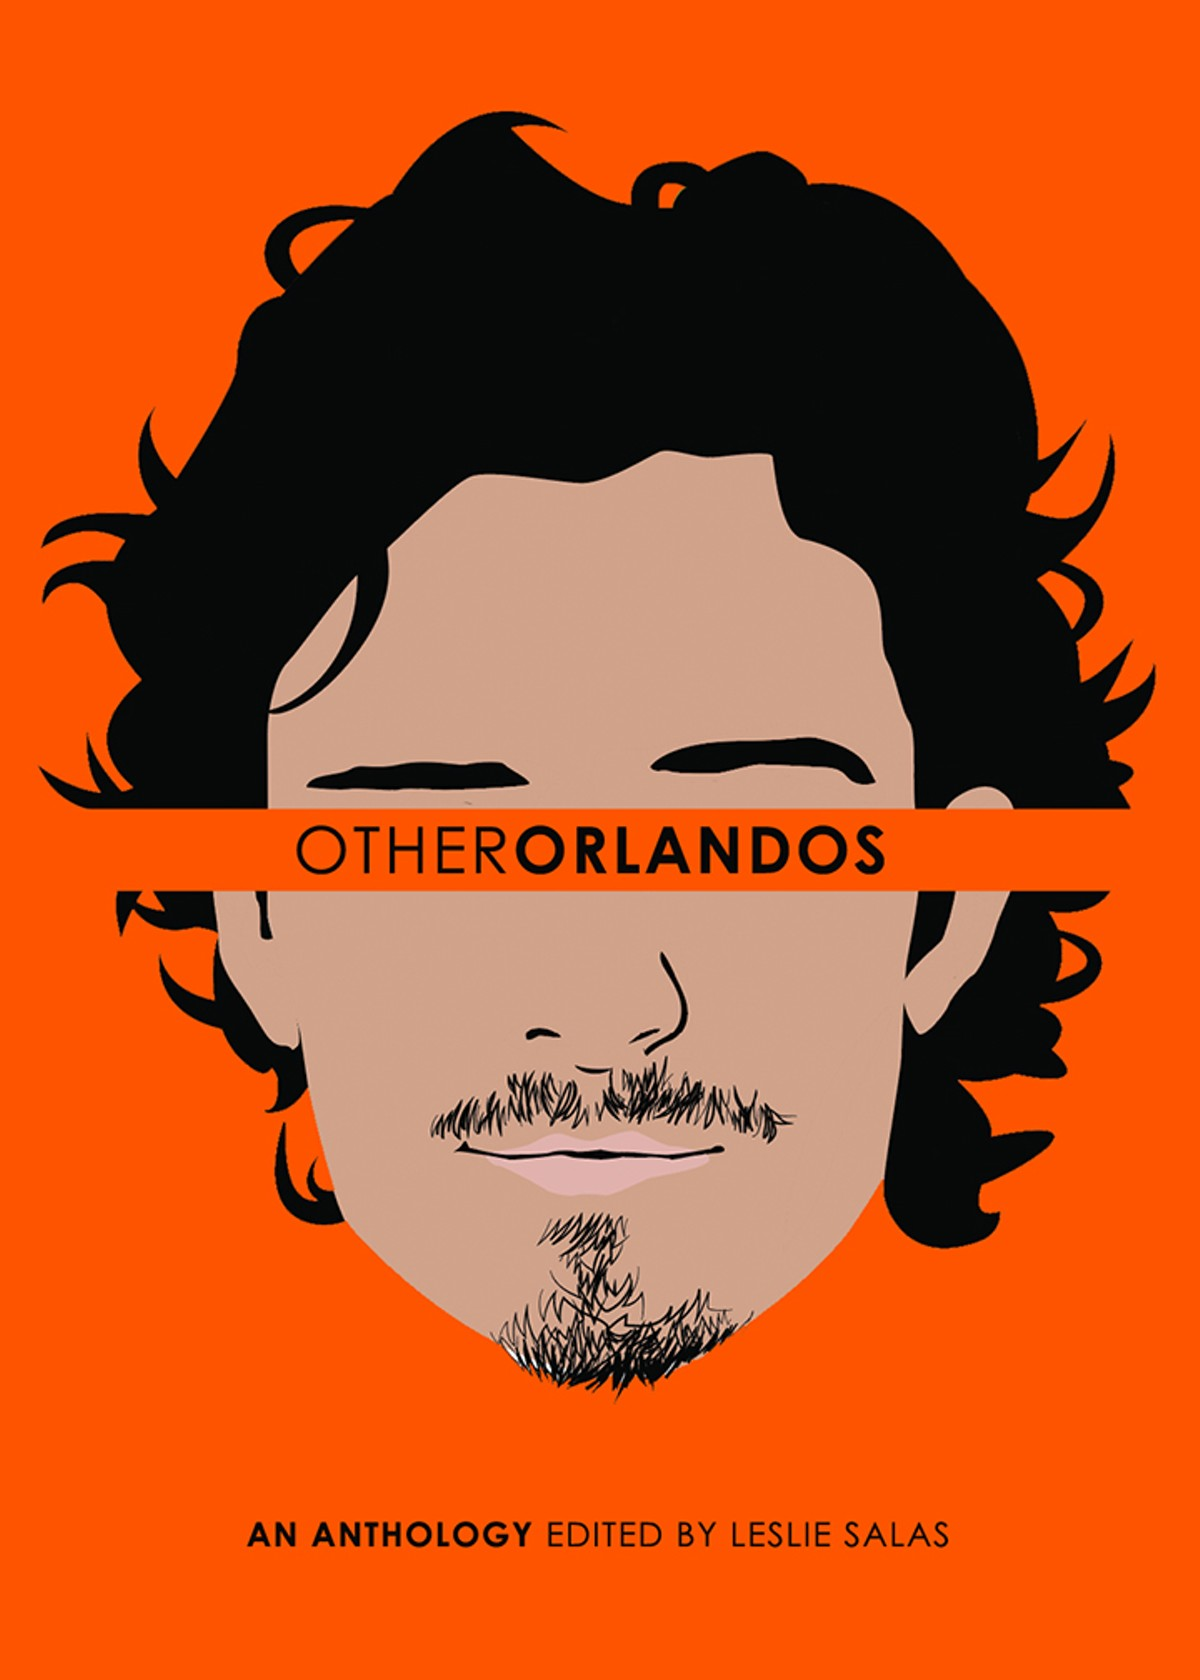 gal_other_orl_cover_credit_lesley_silvia_hi-res.jpg